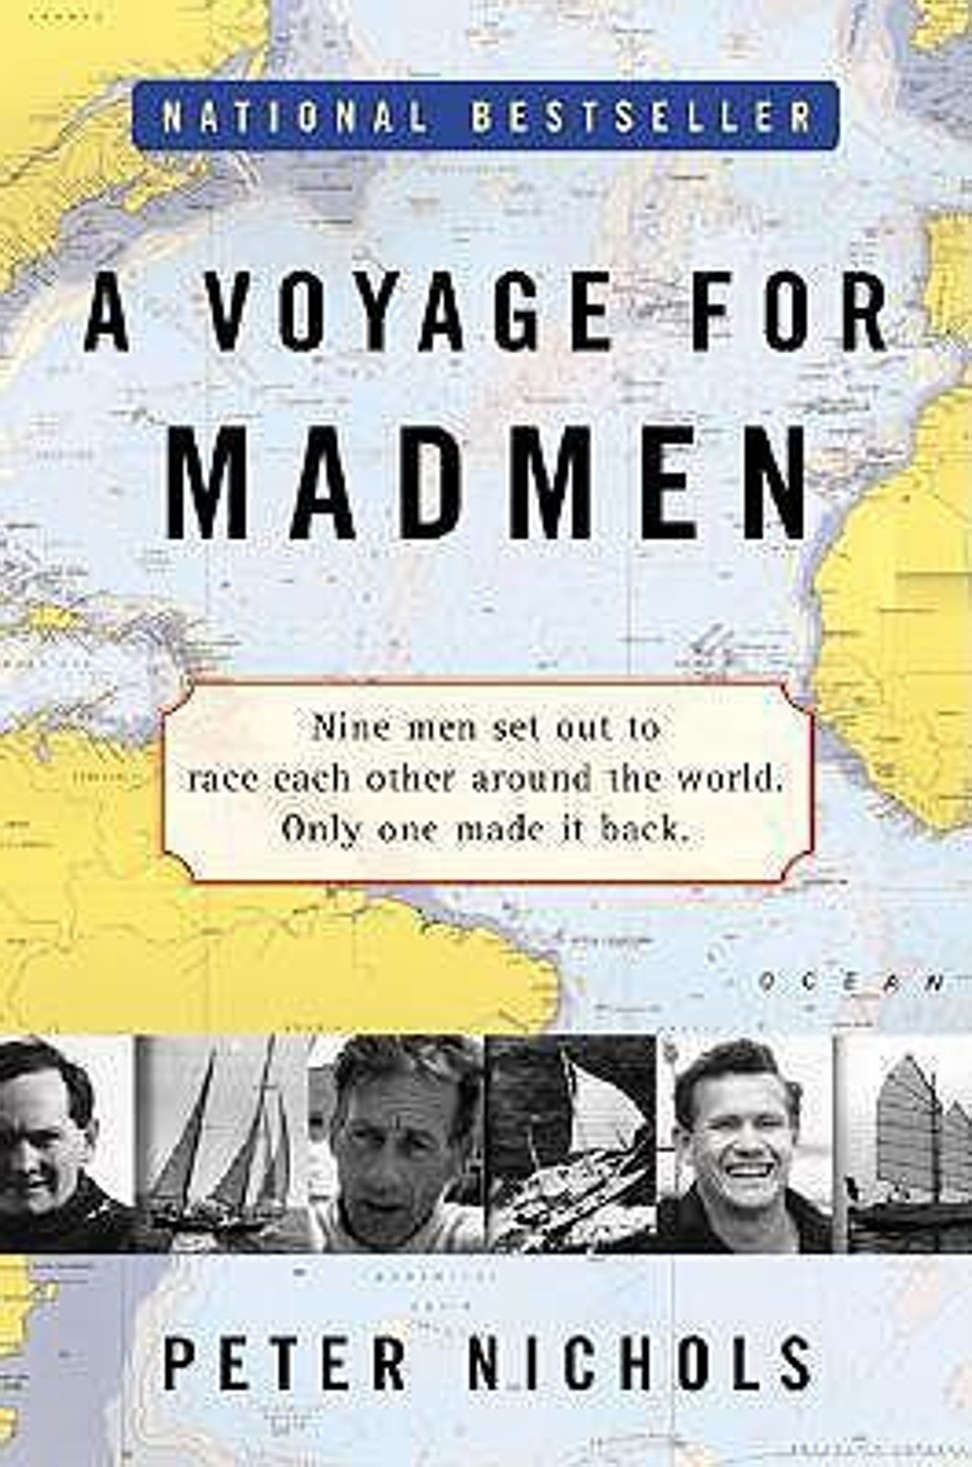 The book captures the atmosphere during a crazy time in sailing in an event that created a series of incredible stories.